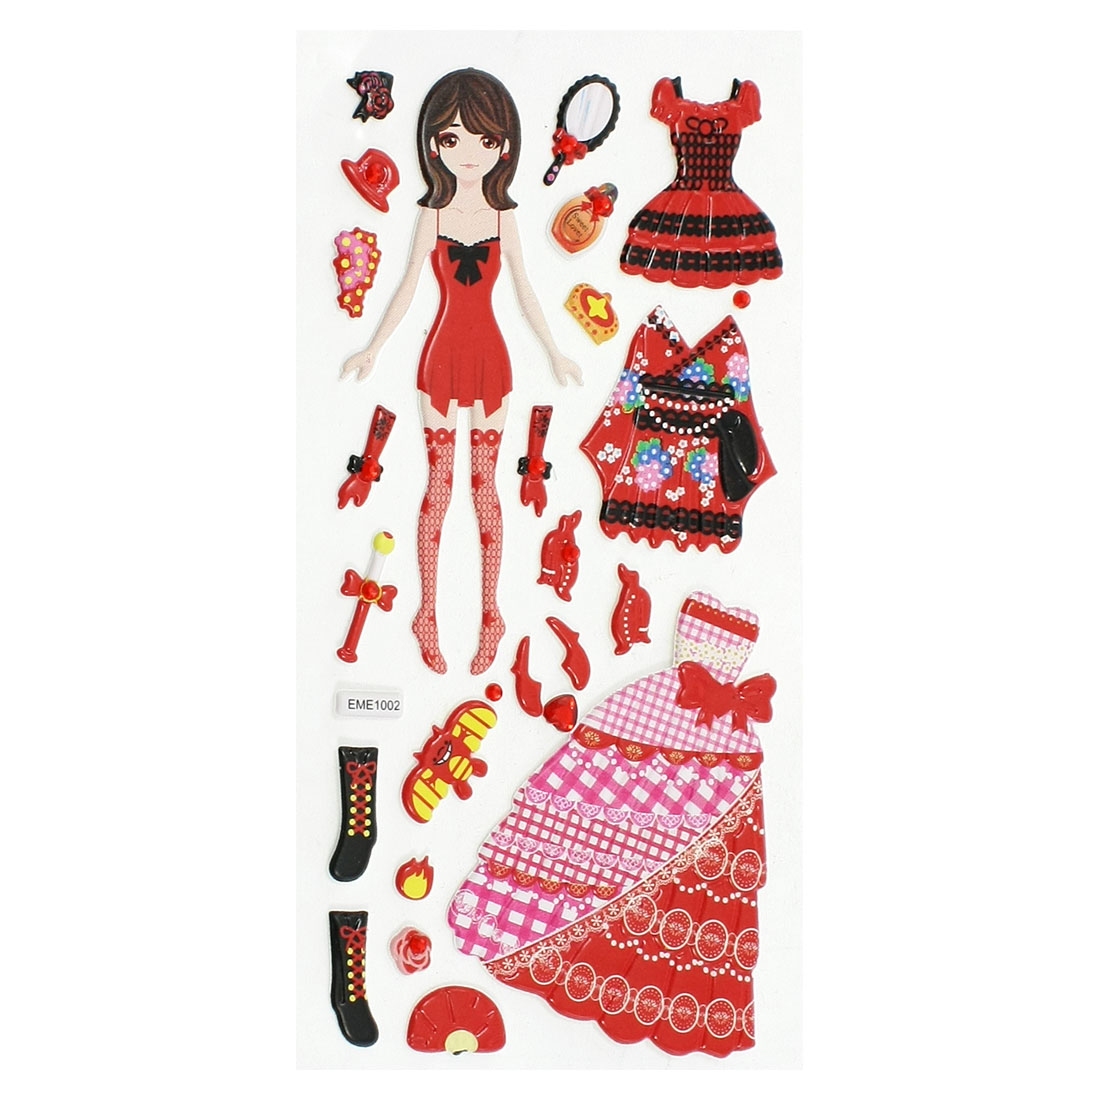 Children Plastic DIY Rhinestone Decor Dress Up Princess Sticker Sheet Red Black